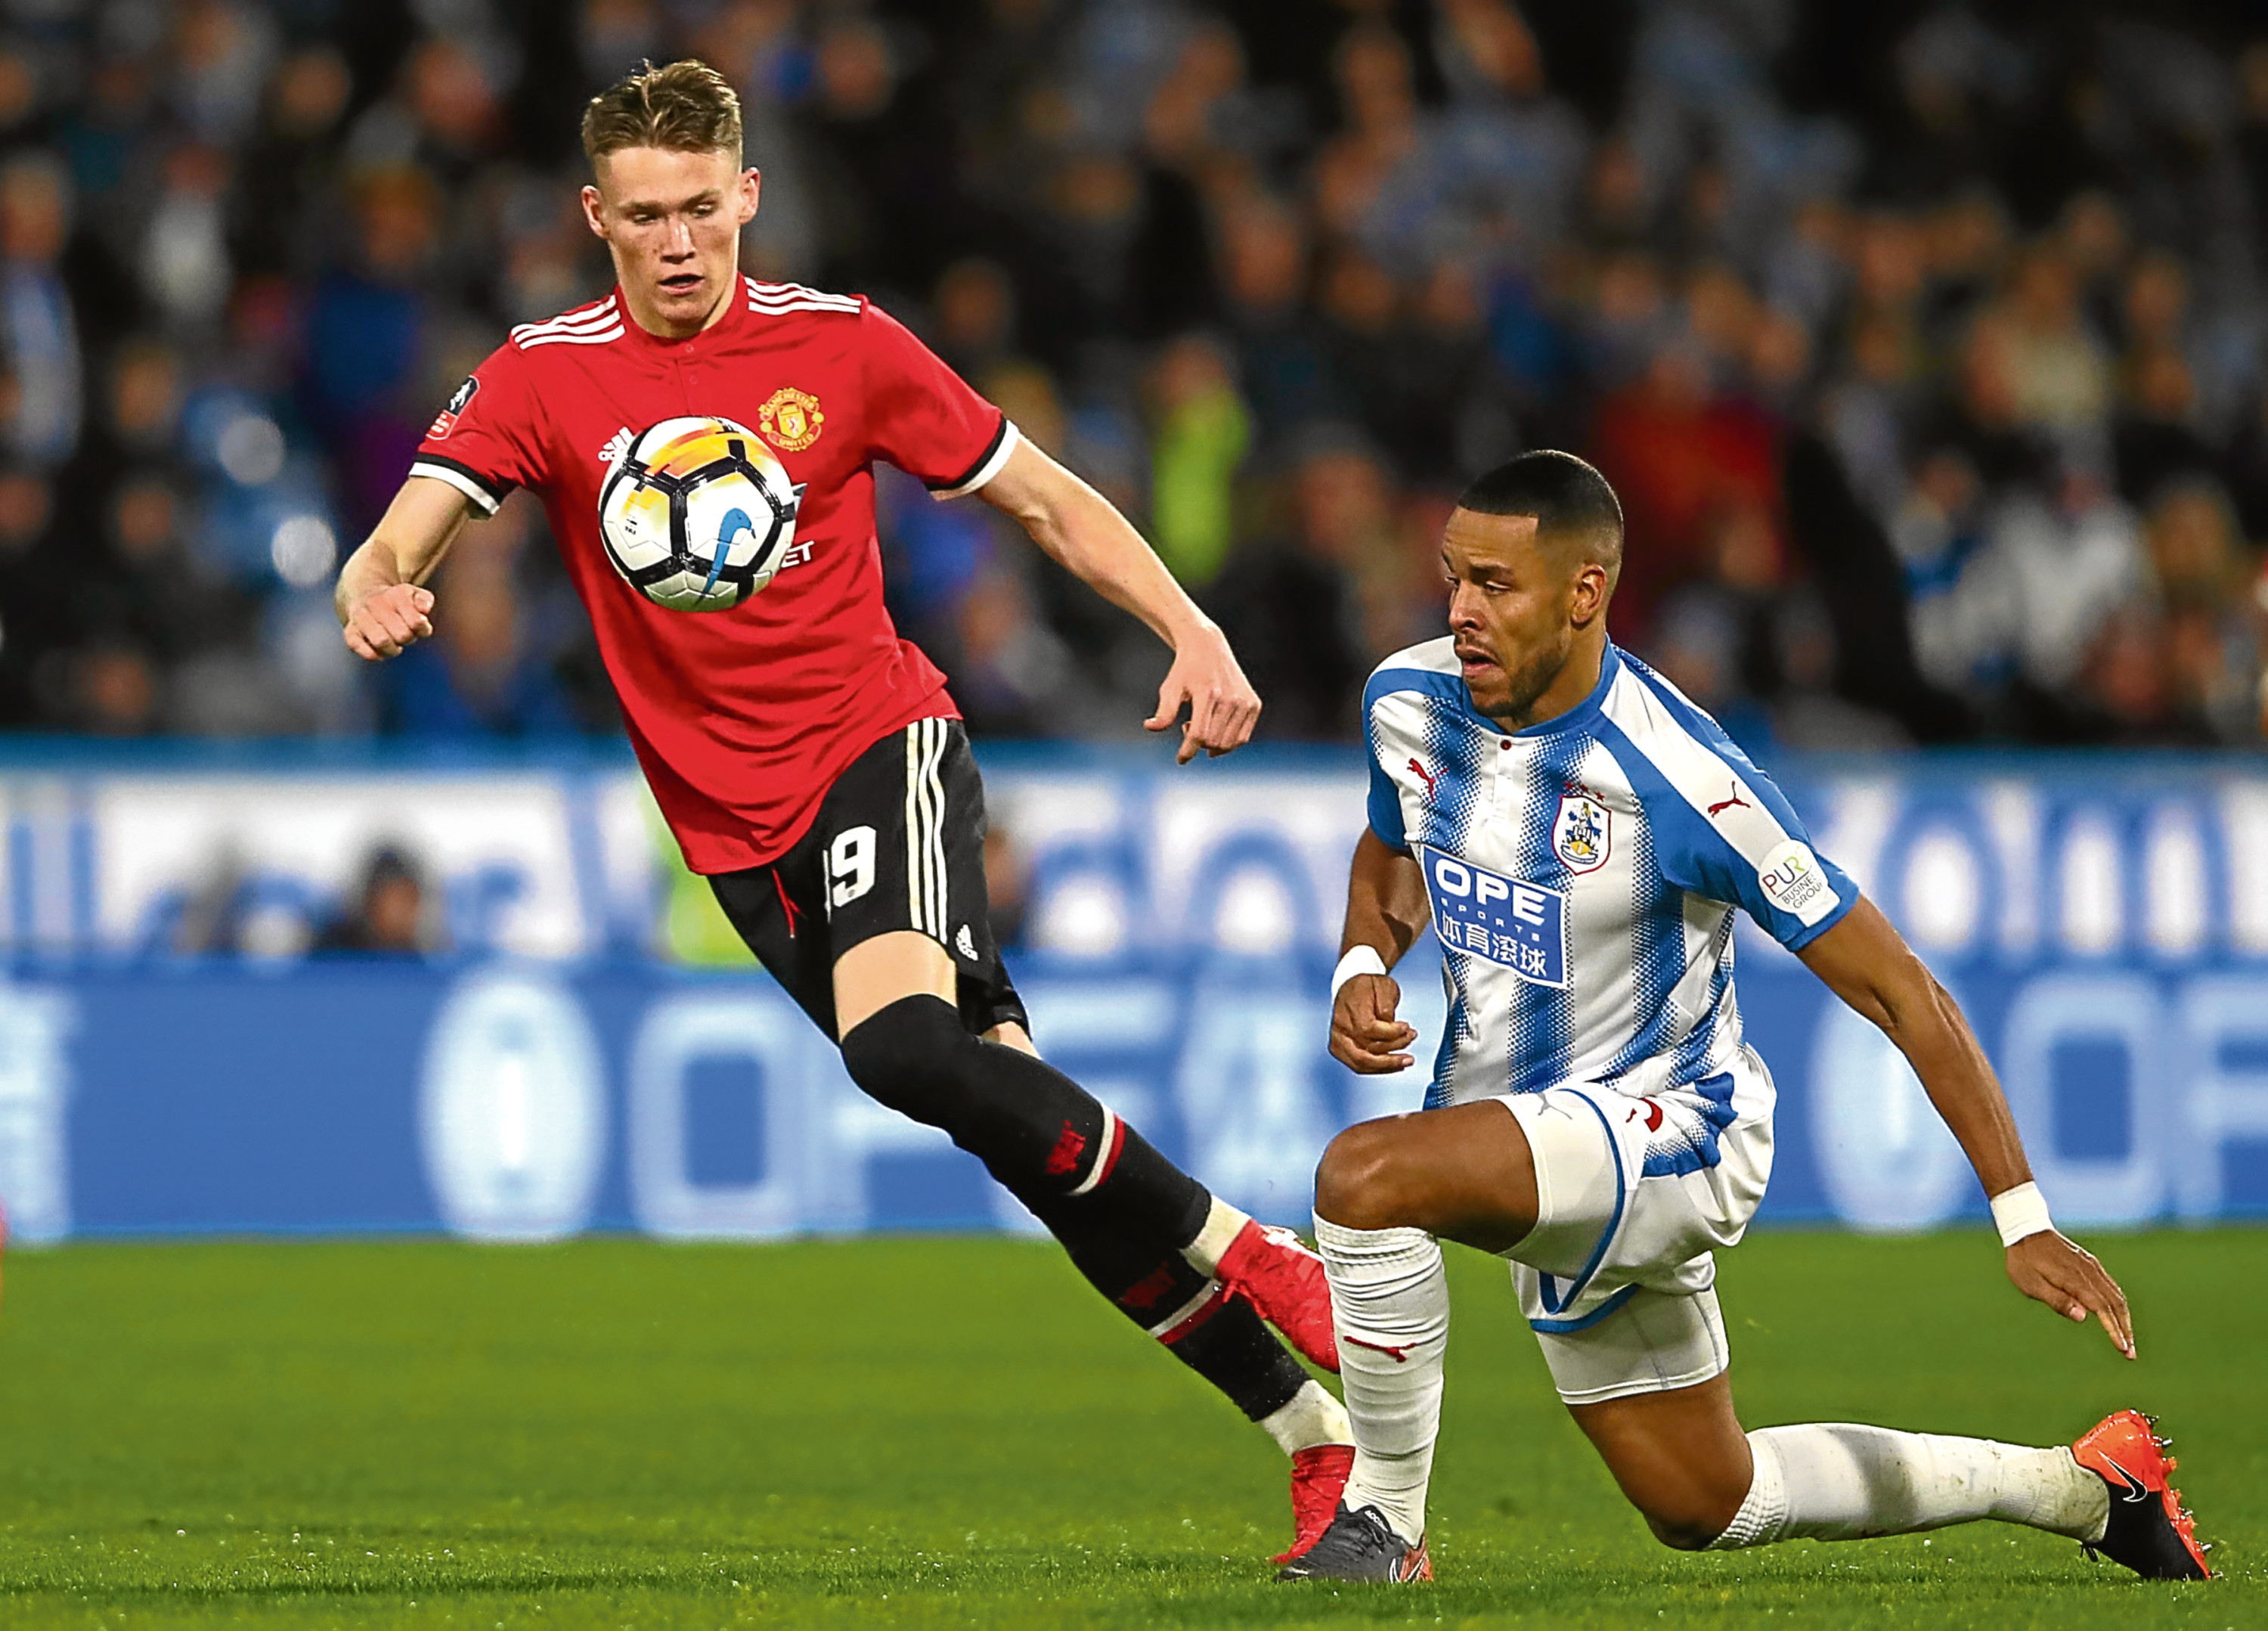 Huddersfield Town v Manchester United (Getty Images)